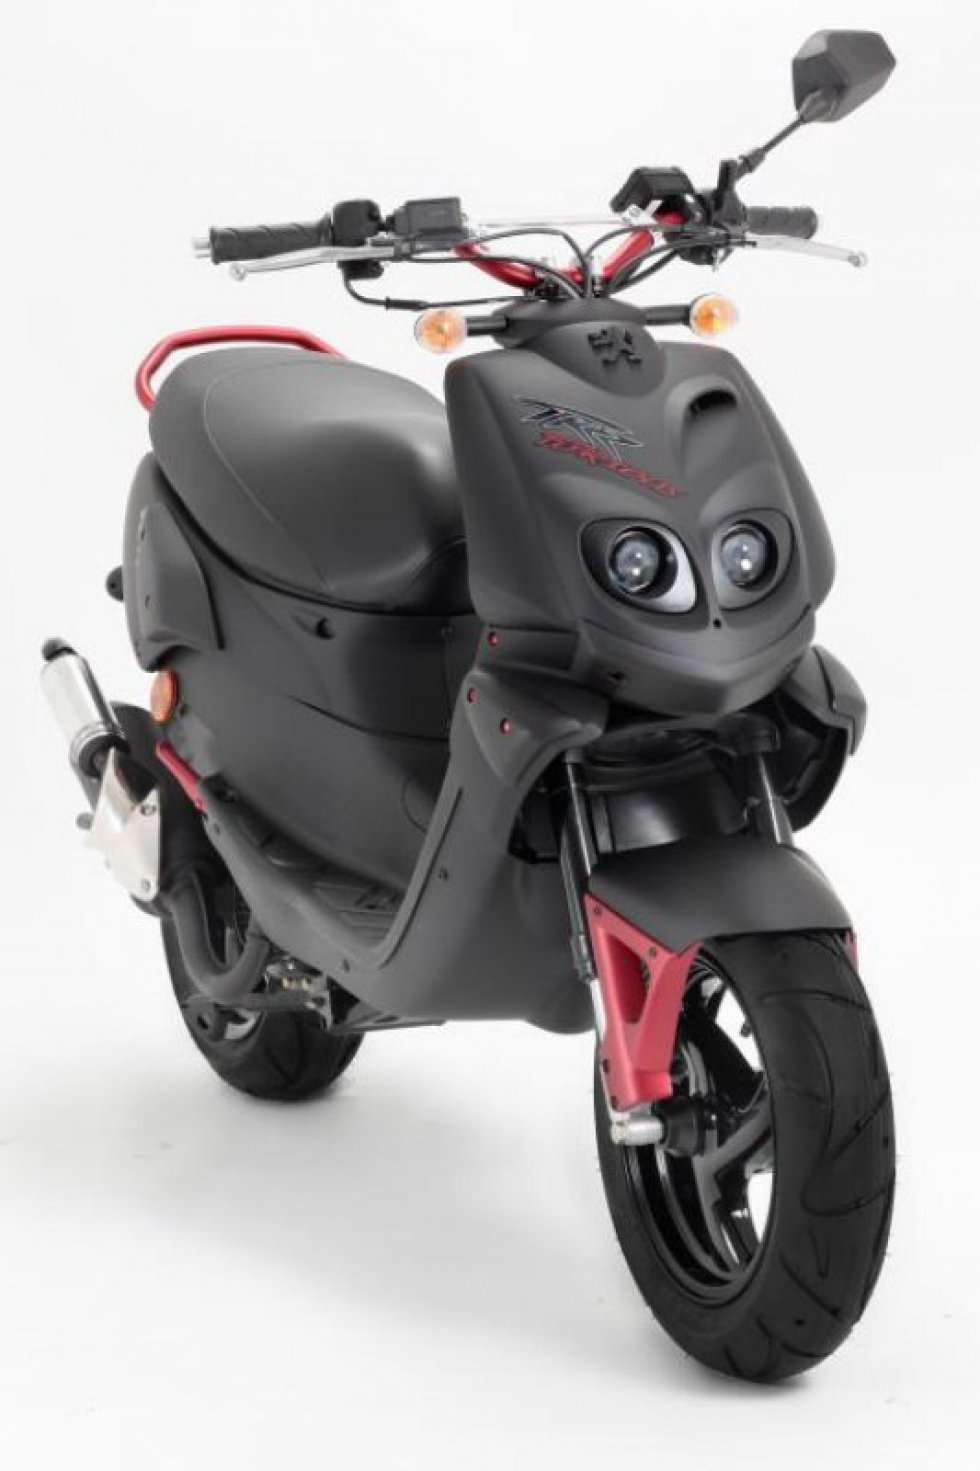 peugeot scooters tkr 12 furious car interior design. Black Bedroom Furniture Sets. Home Design Ideas